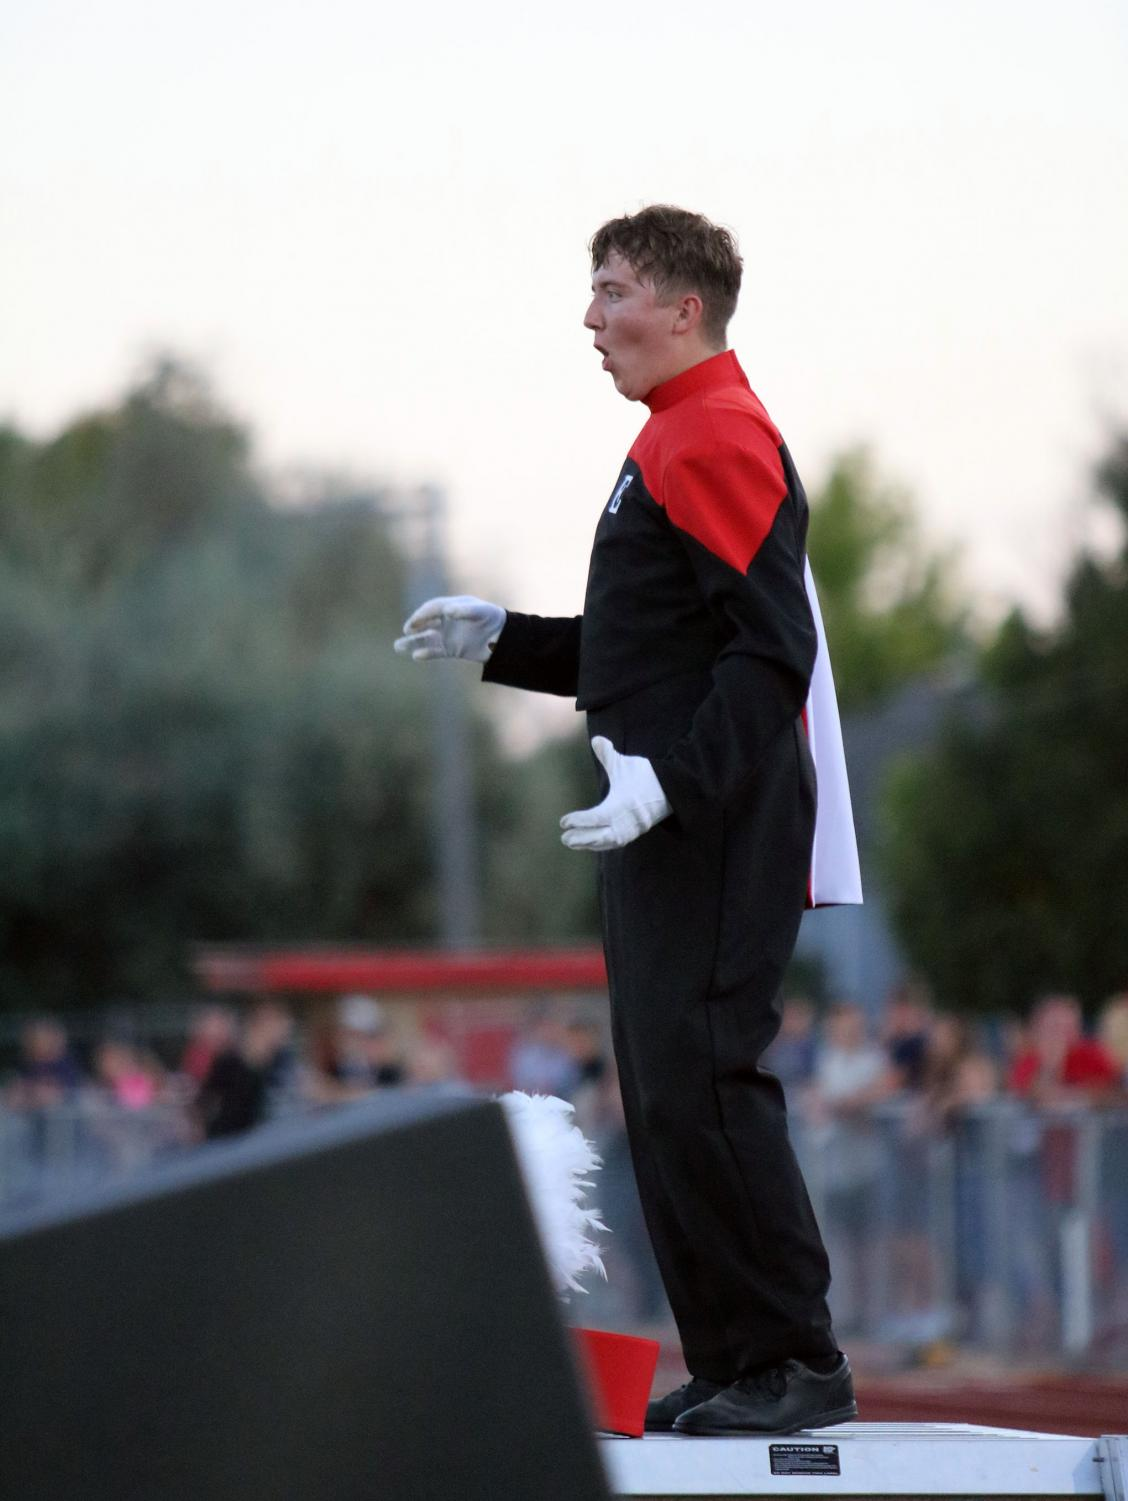 Colton Sell (20) stands on a step ladder before masses of people as he directs the marching band during their performance